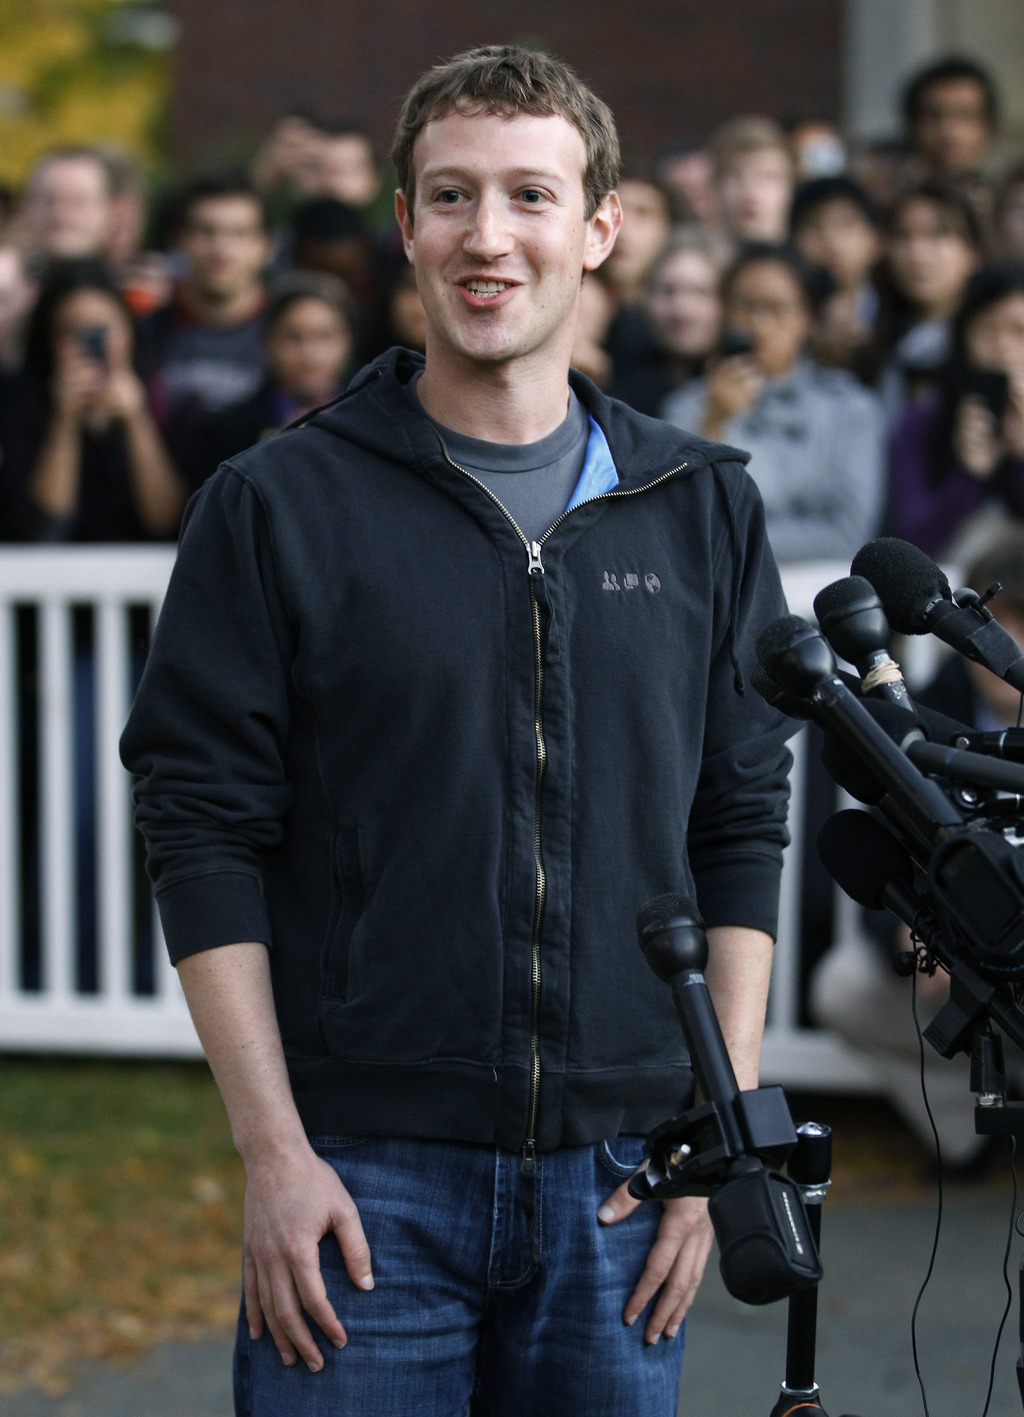 FILE - In this Nov. 7, 2011 file photo, Facebook creator and CEO Mark Zuckerberg takes questions from the media at Harvard University i...